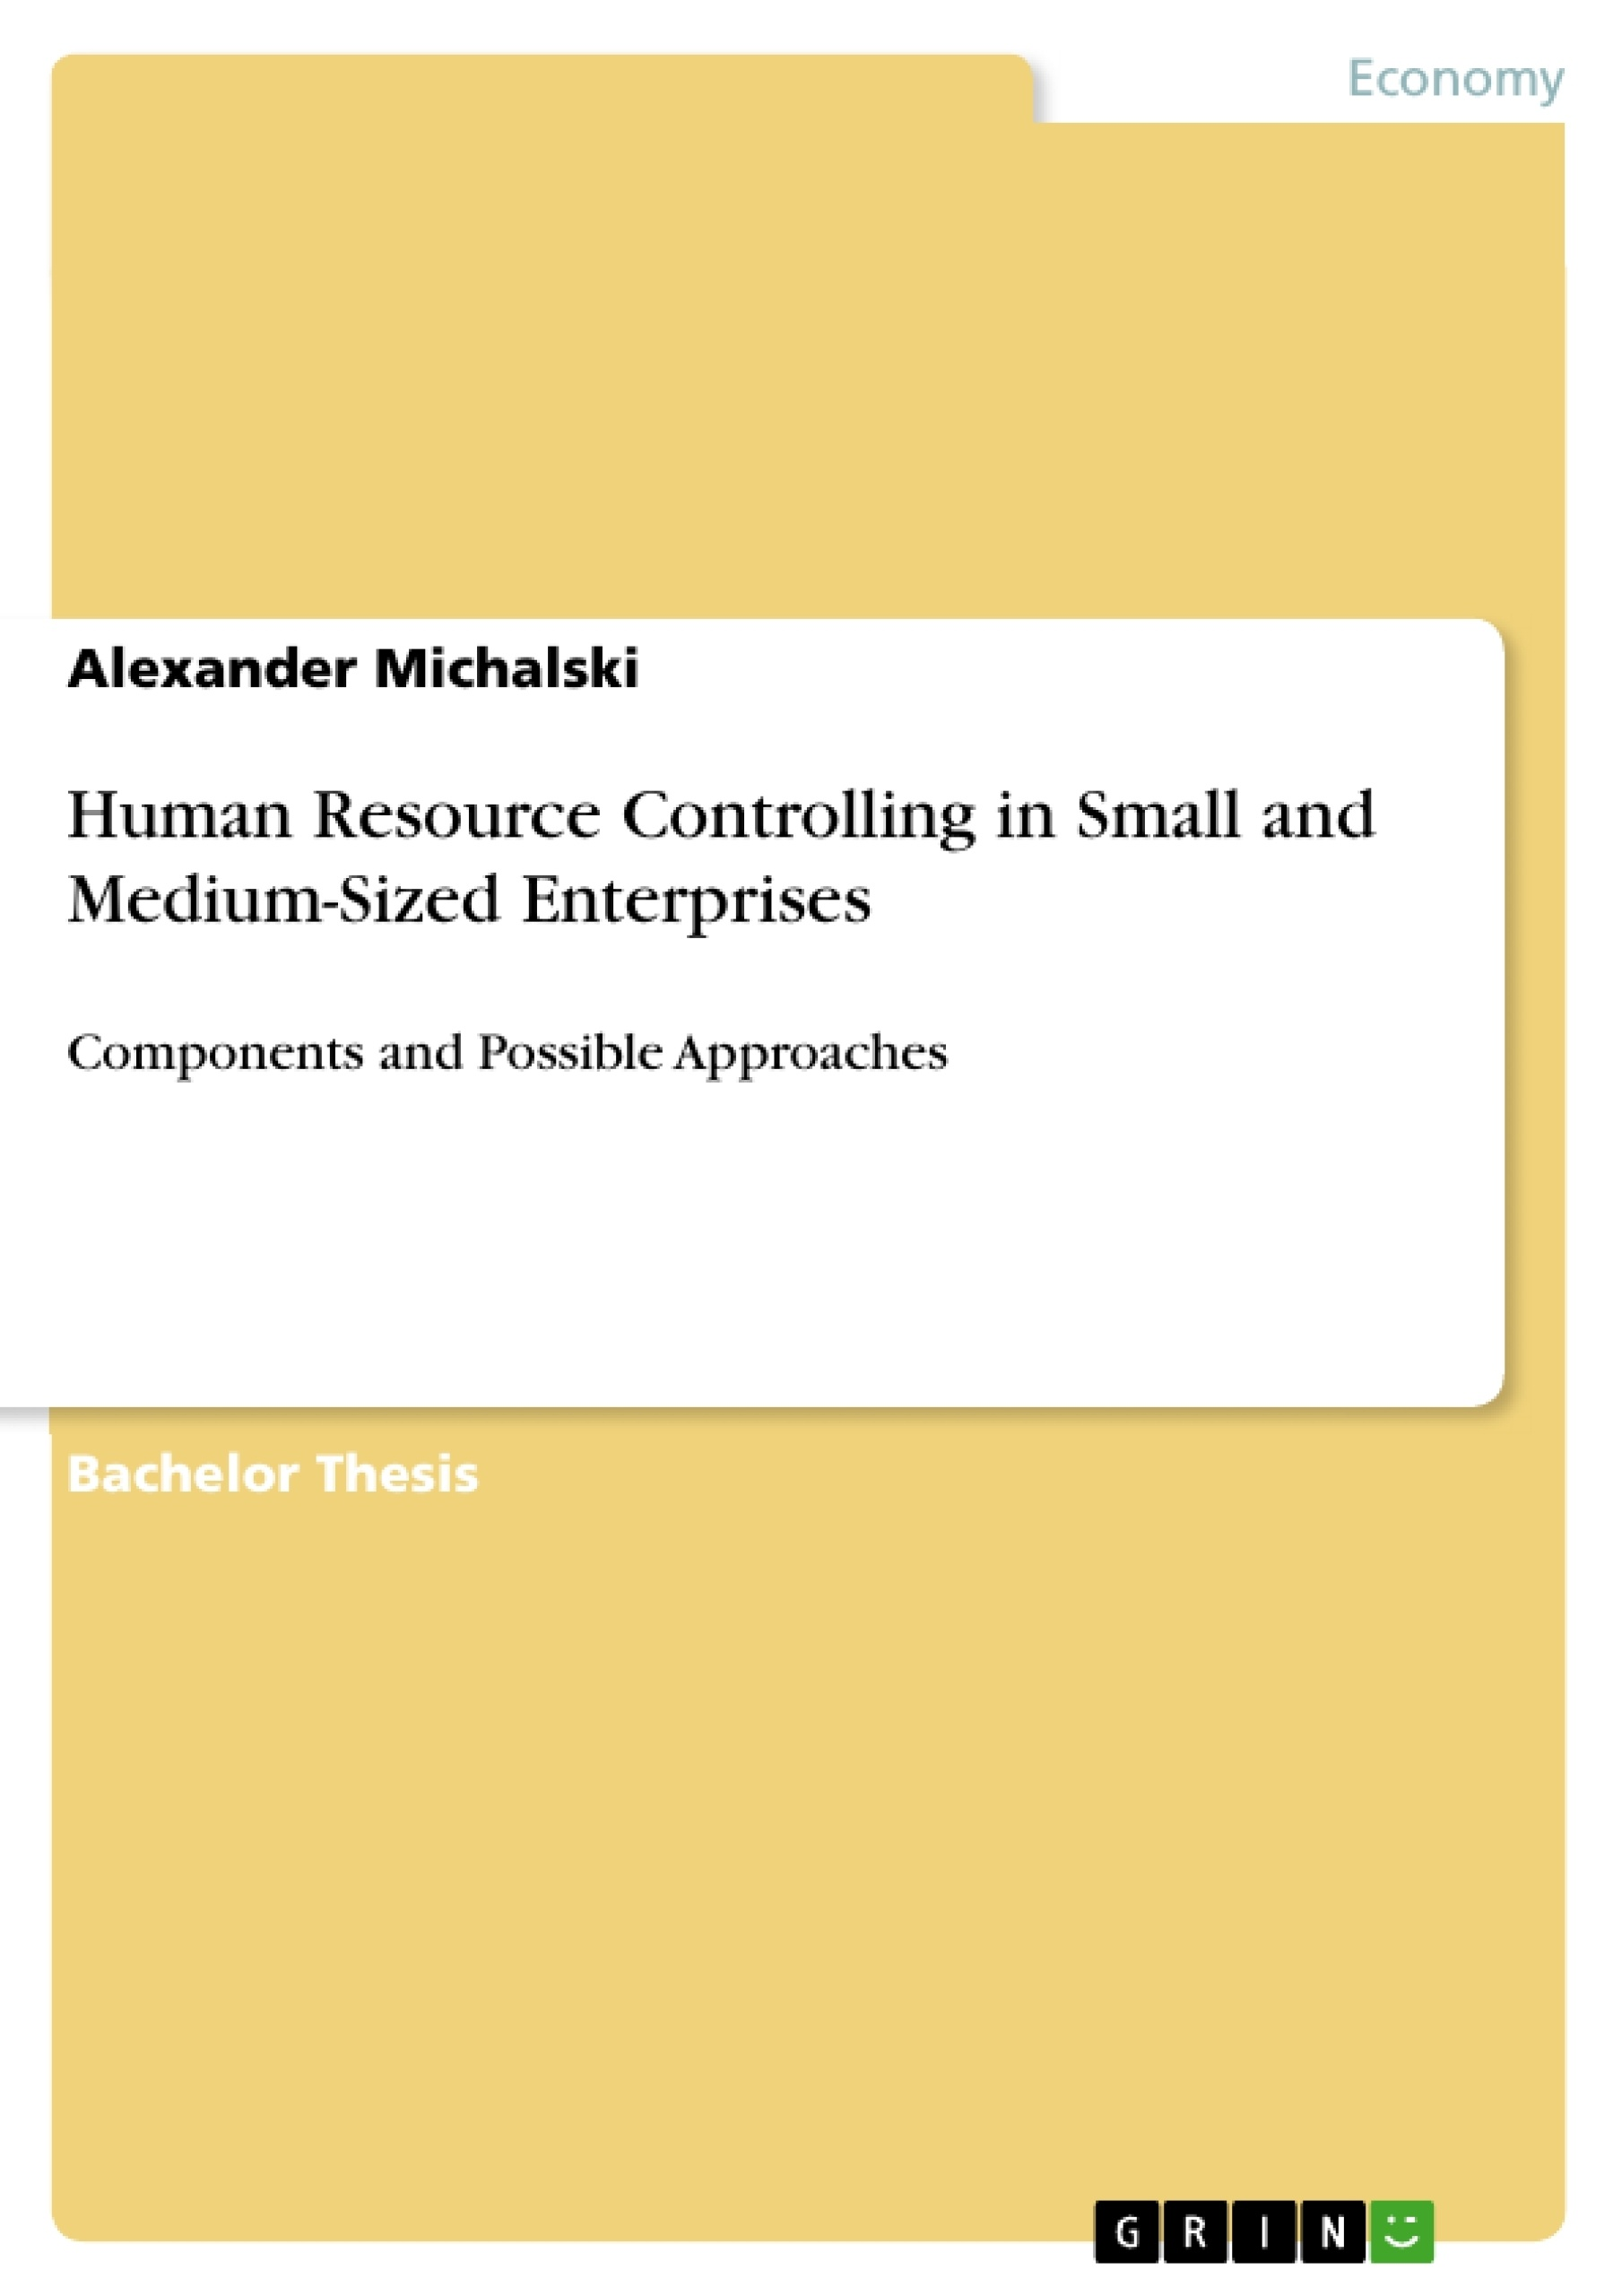 impact of small and medium enterprises in malaysia economics essay Report on support to smes in developing countries through financial intermediaries to small and medium enterprises impact of this capital on economic.